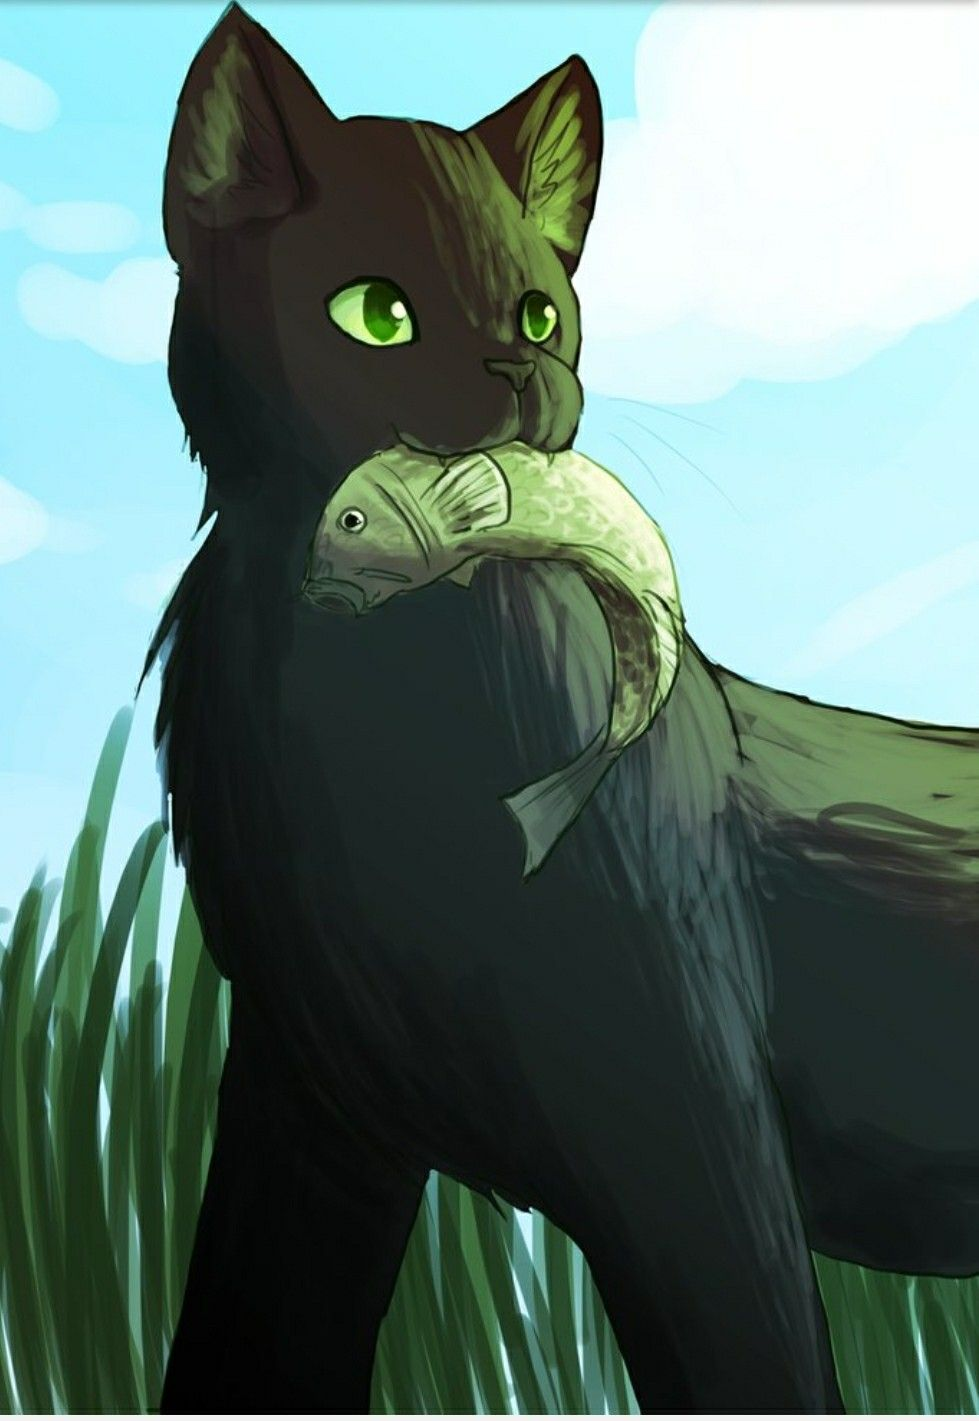 Reedwhisker of Riverclan. Let me just say, Reedwhisker is